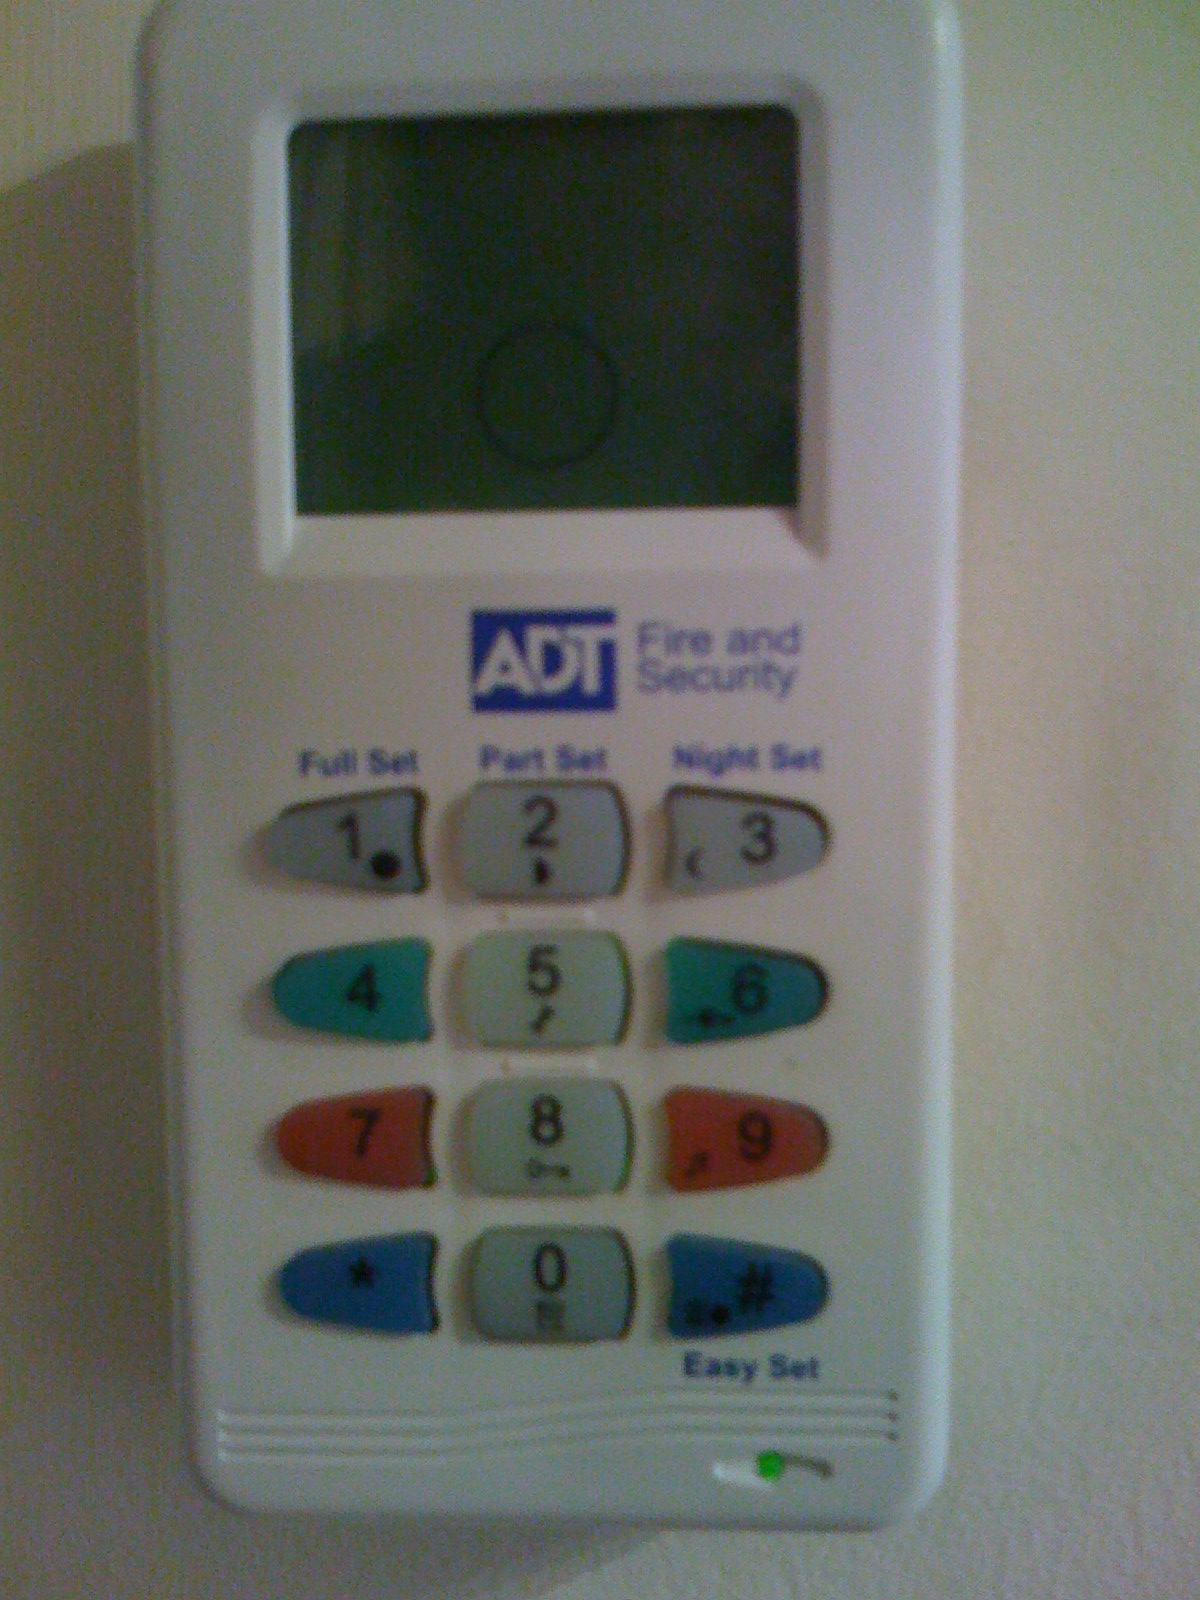 adt home security user manual